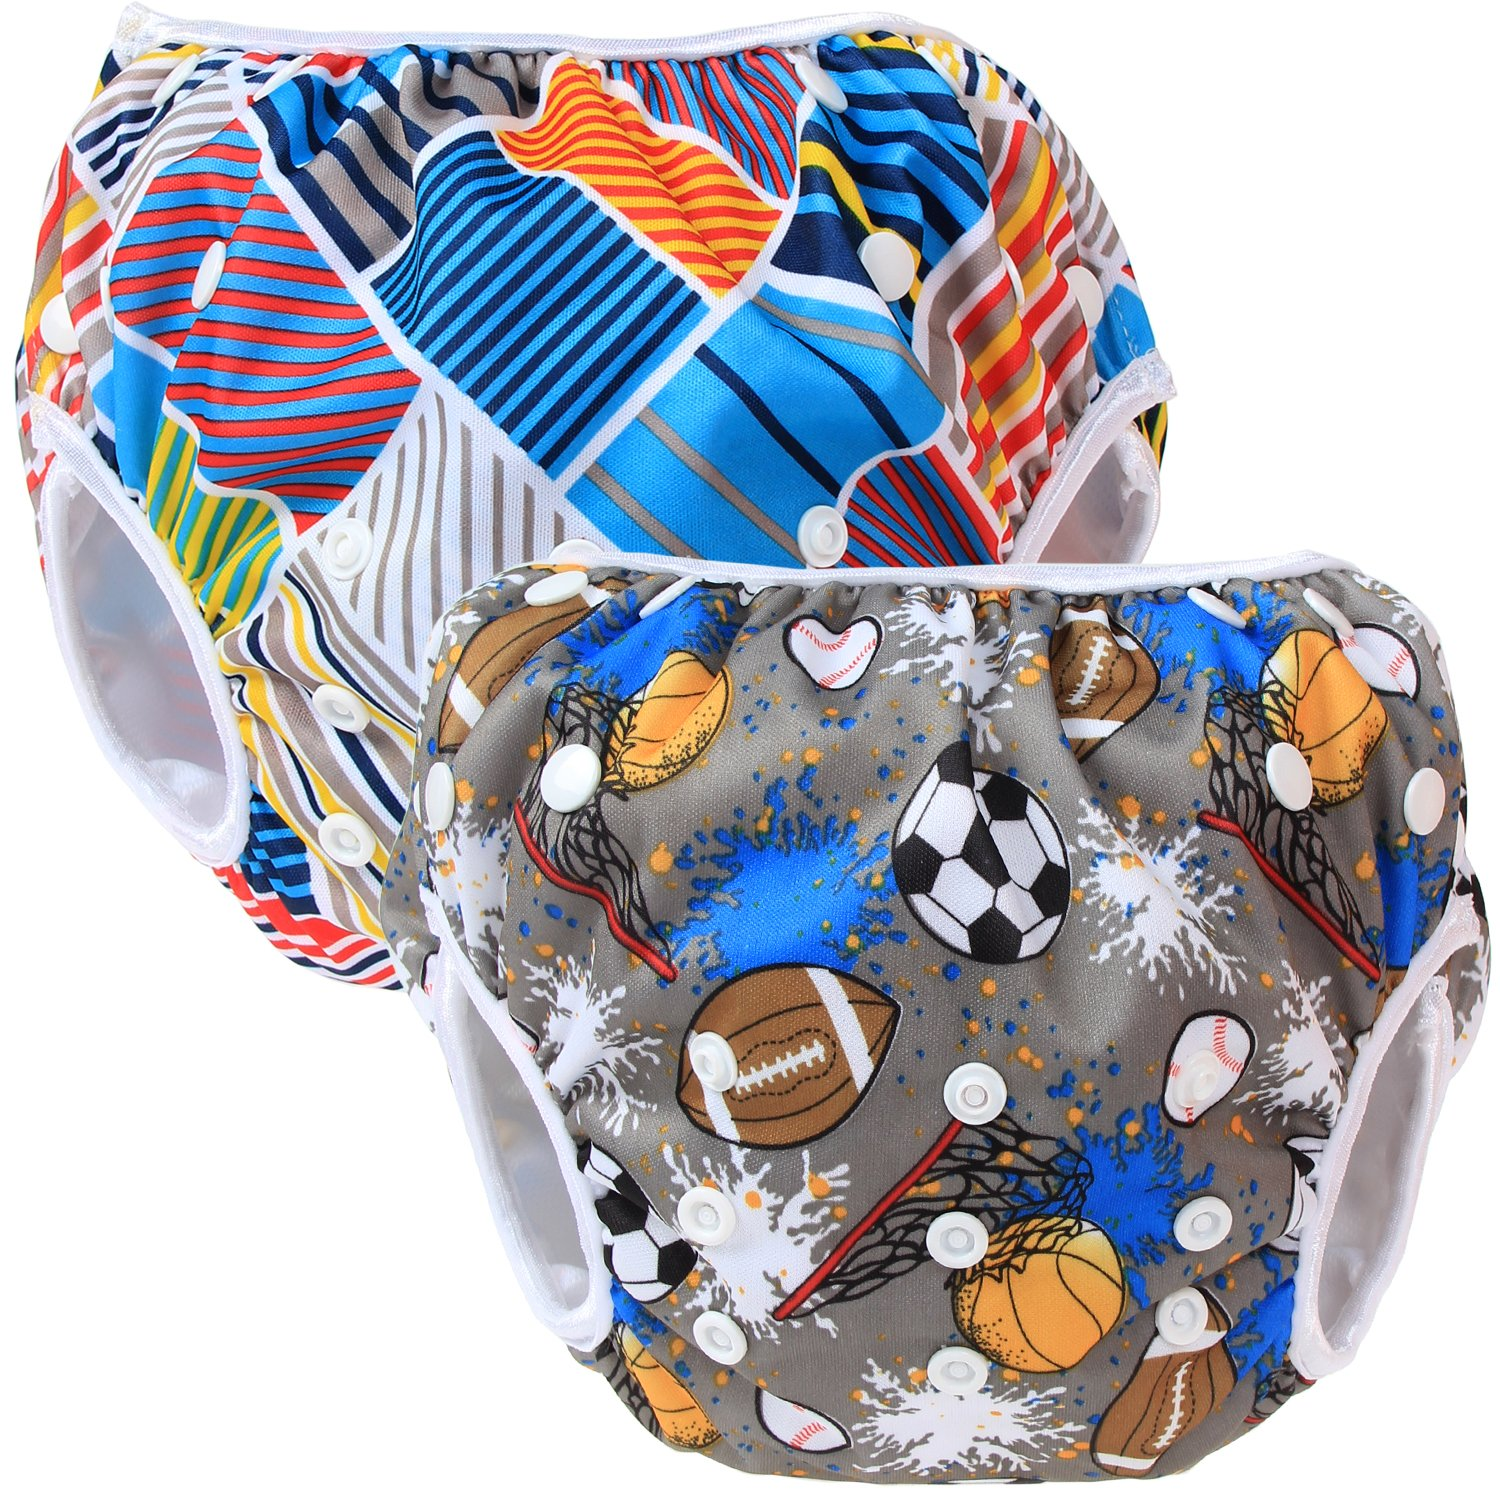 Teamoy Reusable Swim Nappy(2 Packs) for Baby Boys& Girls, Comfortable, Washable and Adjustable, Ideal for Swimming Lessons/Holiday, Cats+ Colorful Chevron